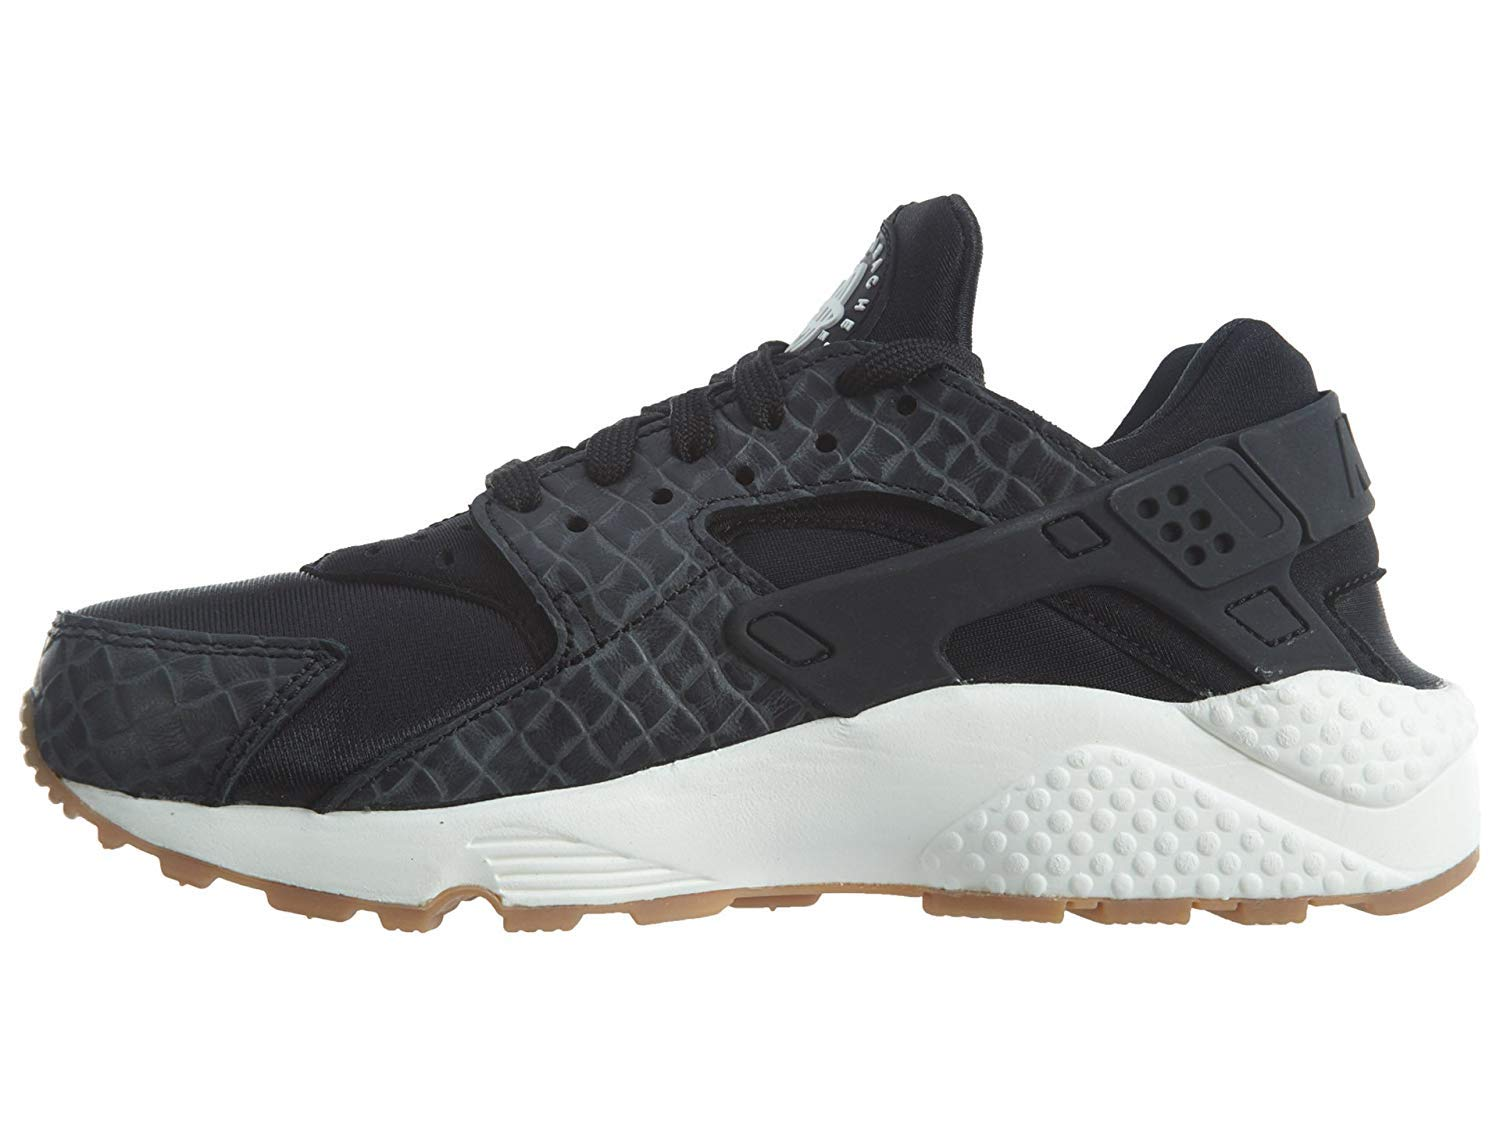 f21c4f89ec14 Amazon.com  Nike Men s Air Huarache Running Shoe  Nike  Shoes